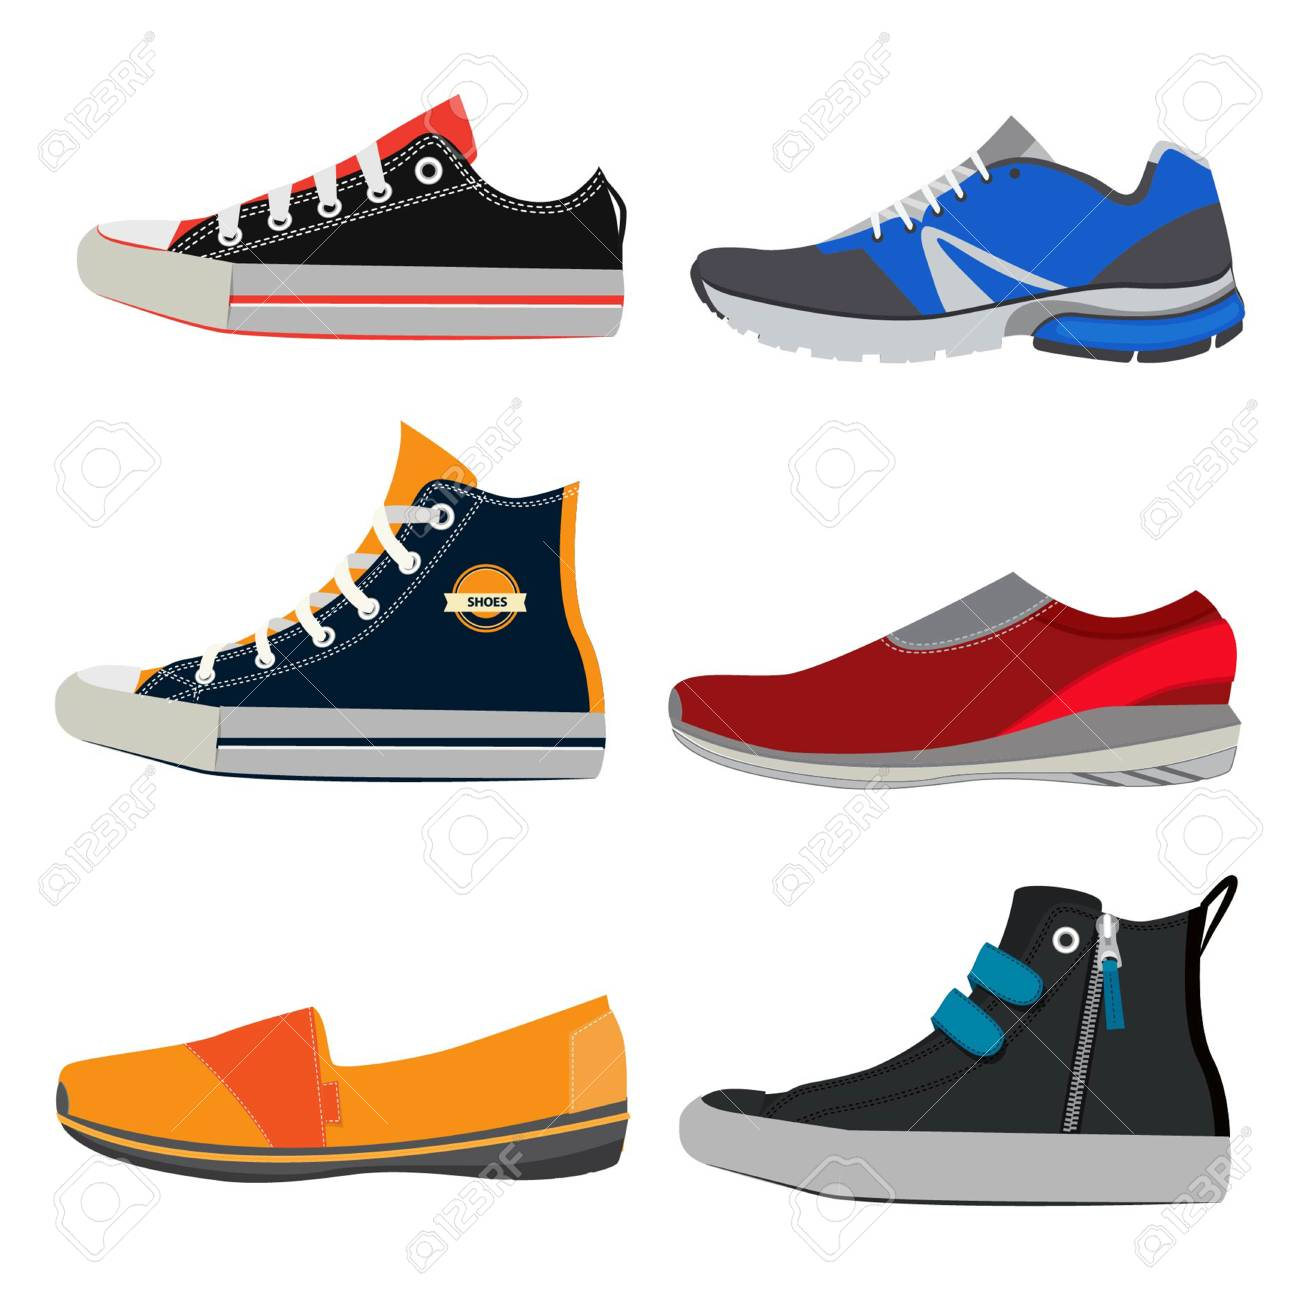 brand new 9789f 2b04e Teenage sports shoes. Colorful sneakers at different styles. Vector  illustrations set in cartoon style